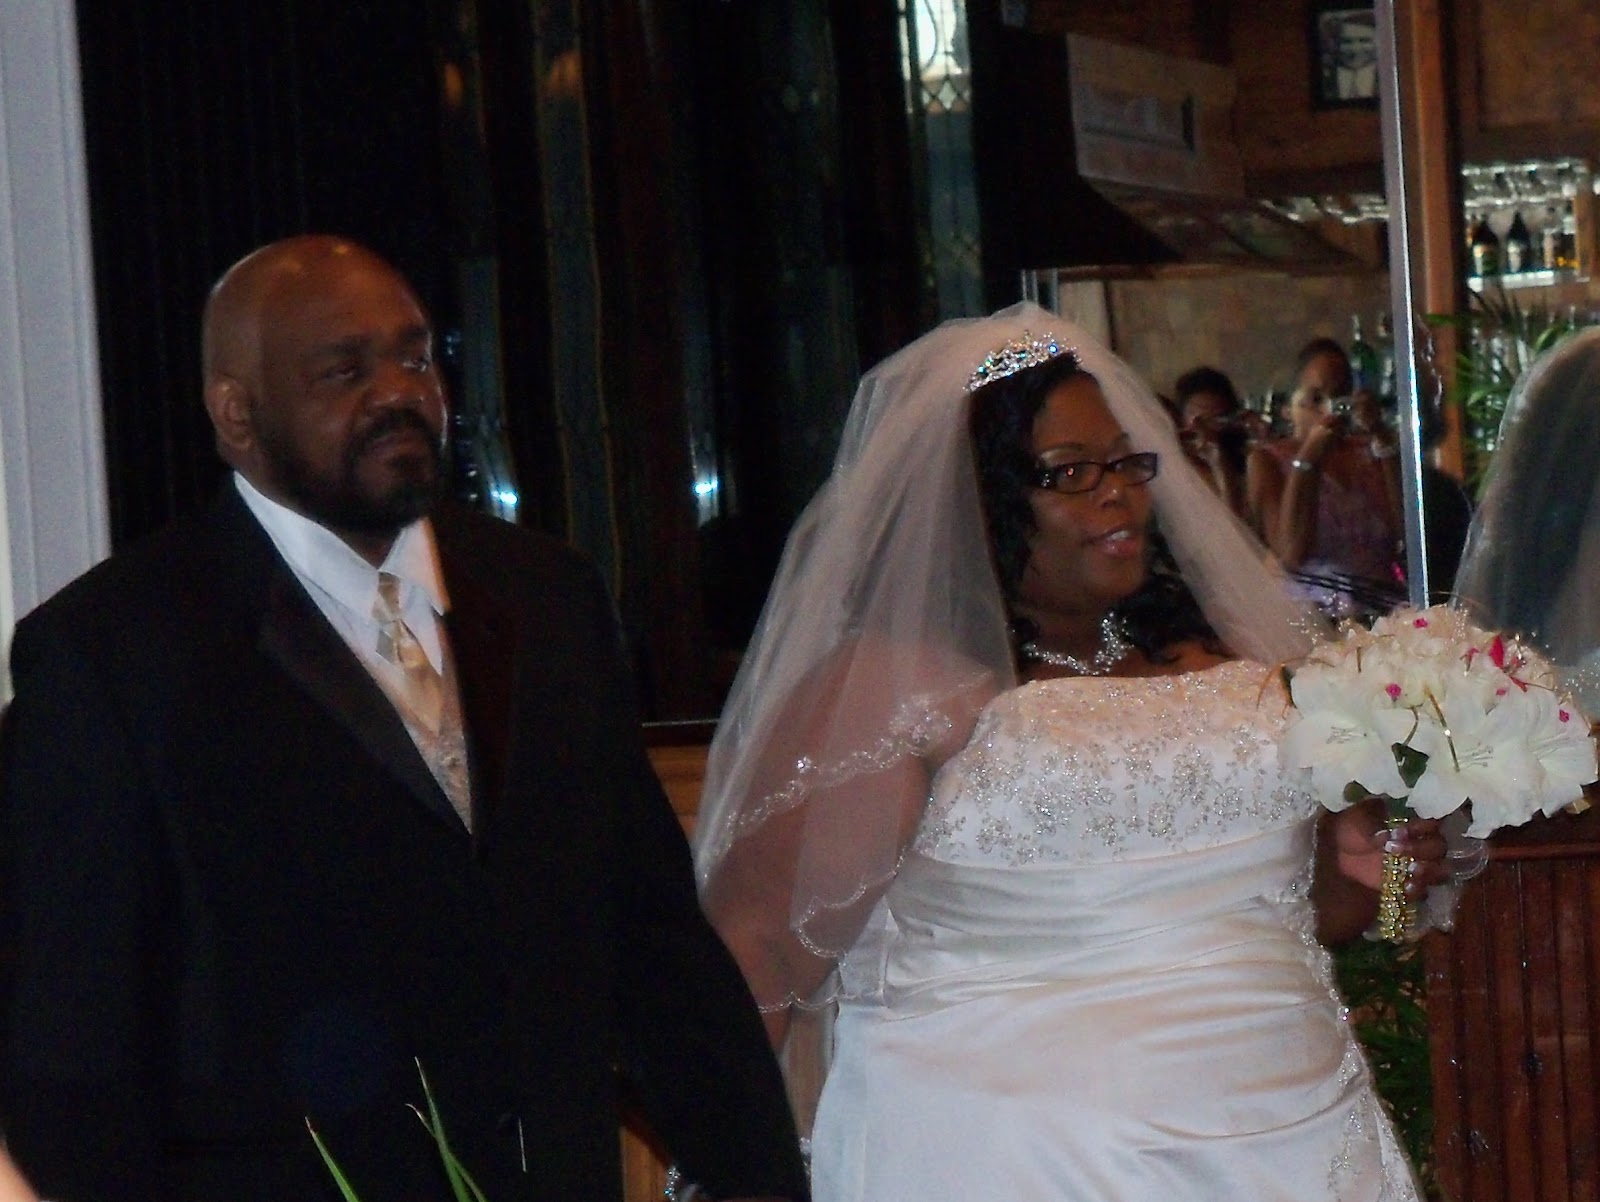 MeChaia Lunn and Clyde Longs wedding - 101_4571.JPG